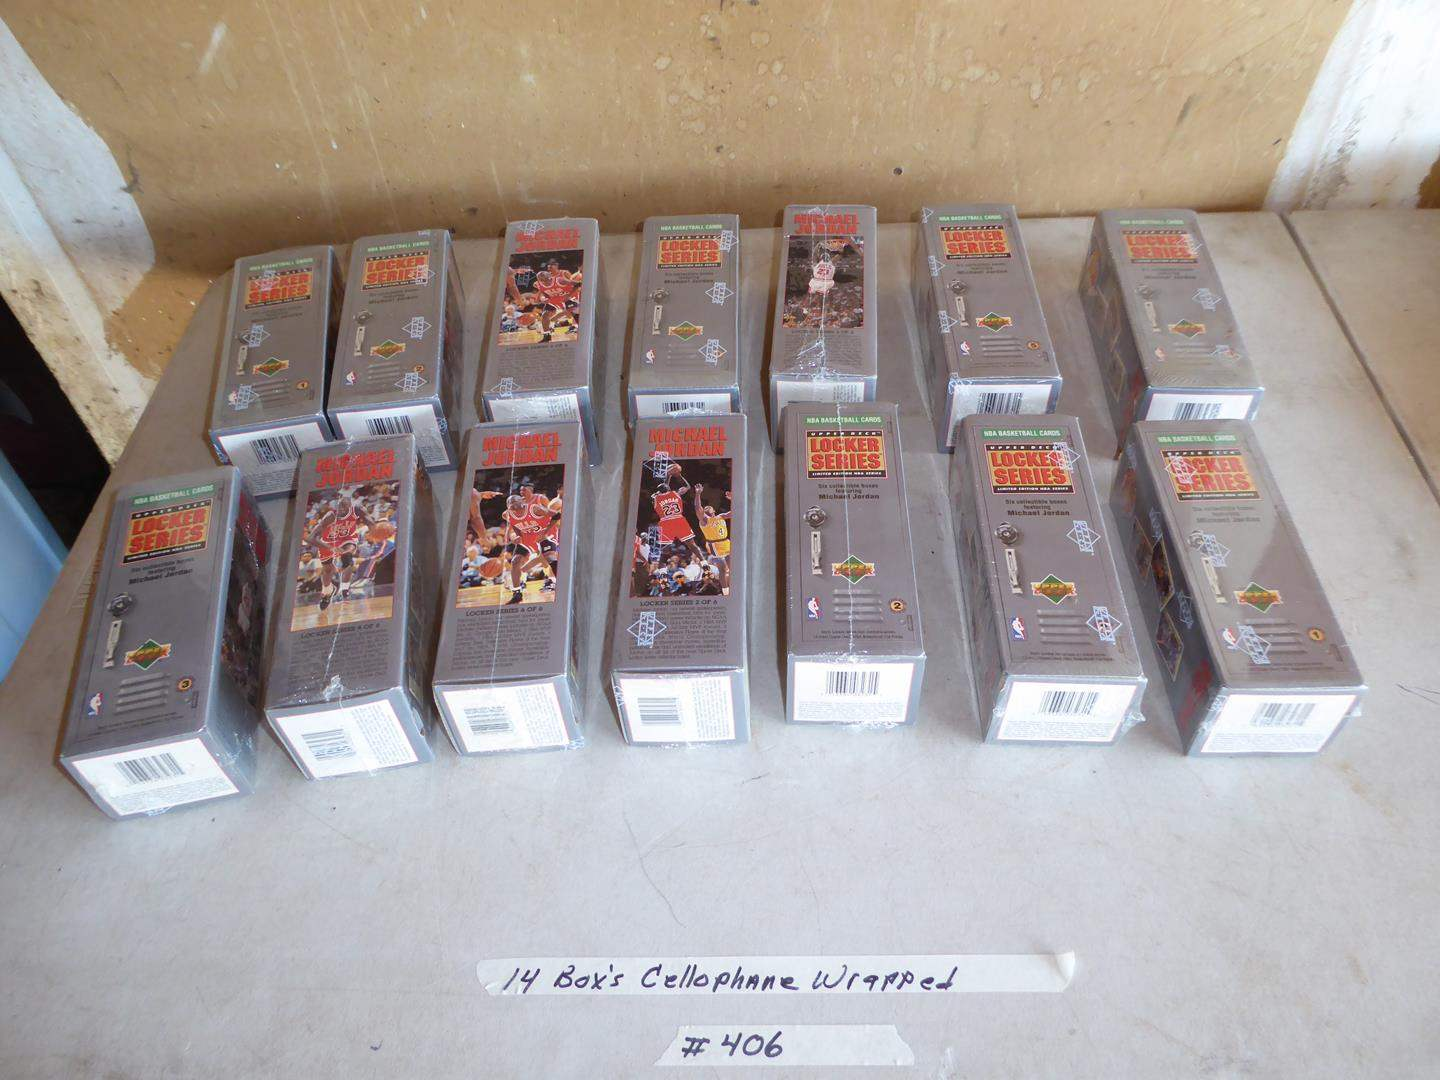 Lot # 406 - 14 Boxes Basketball Cards - Cellophane Wrapped (main image)